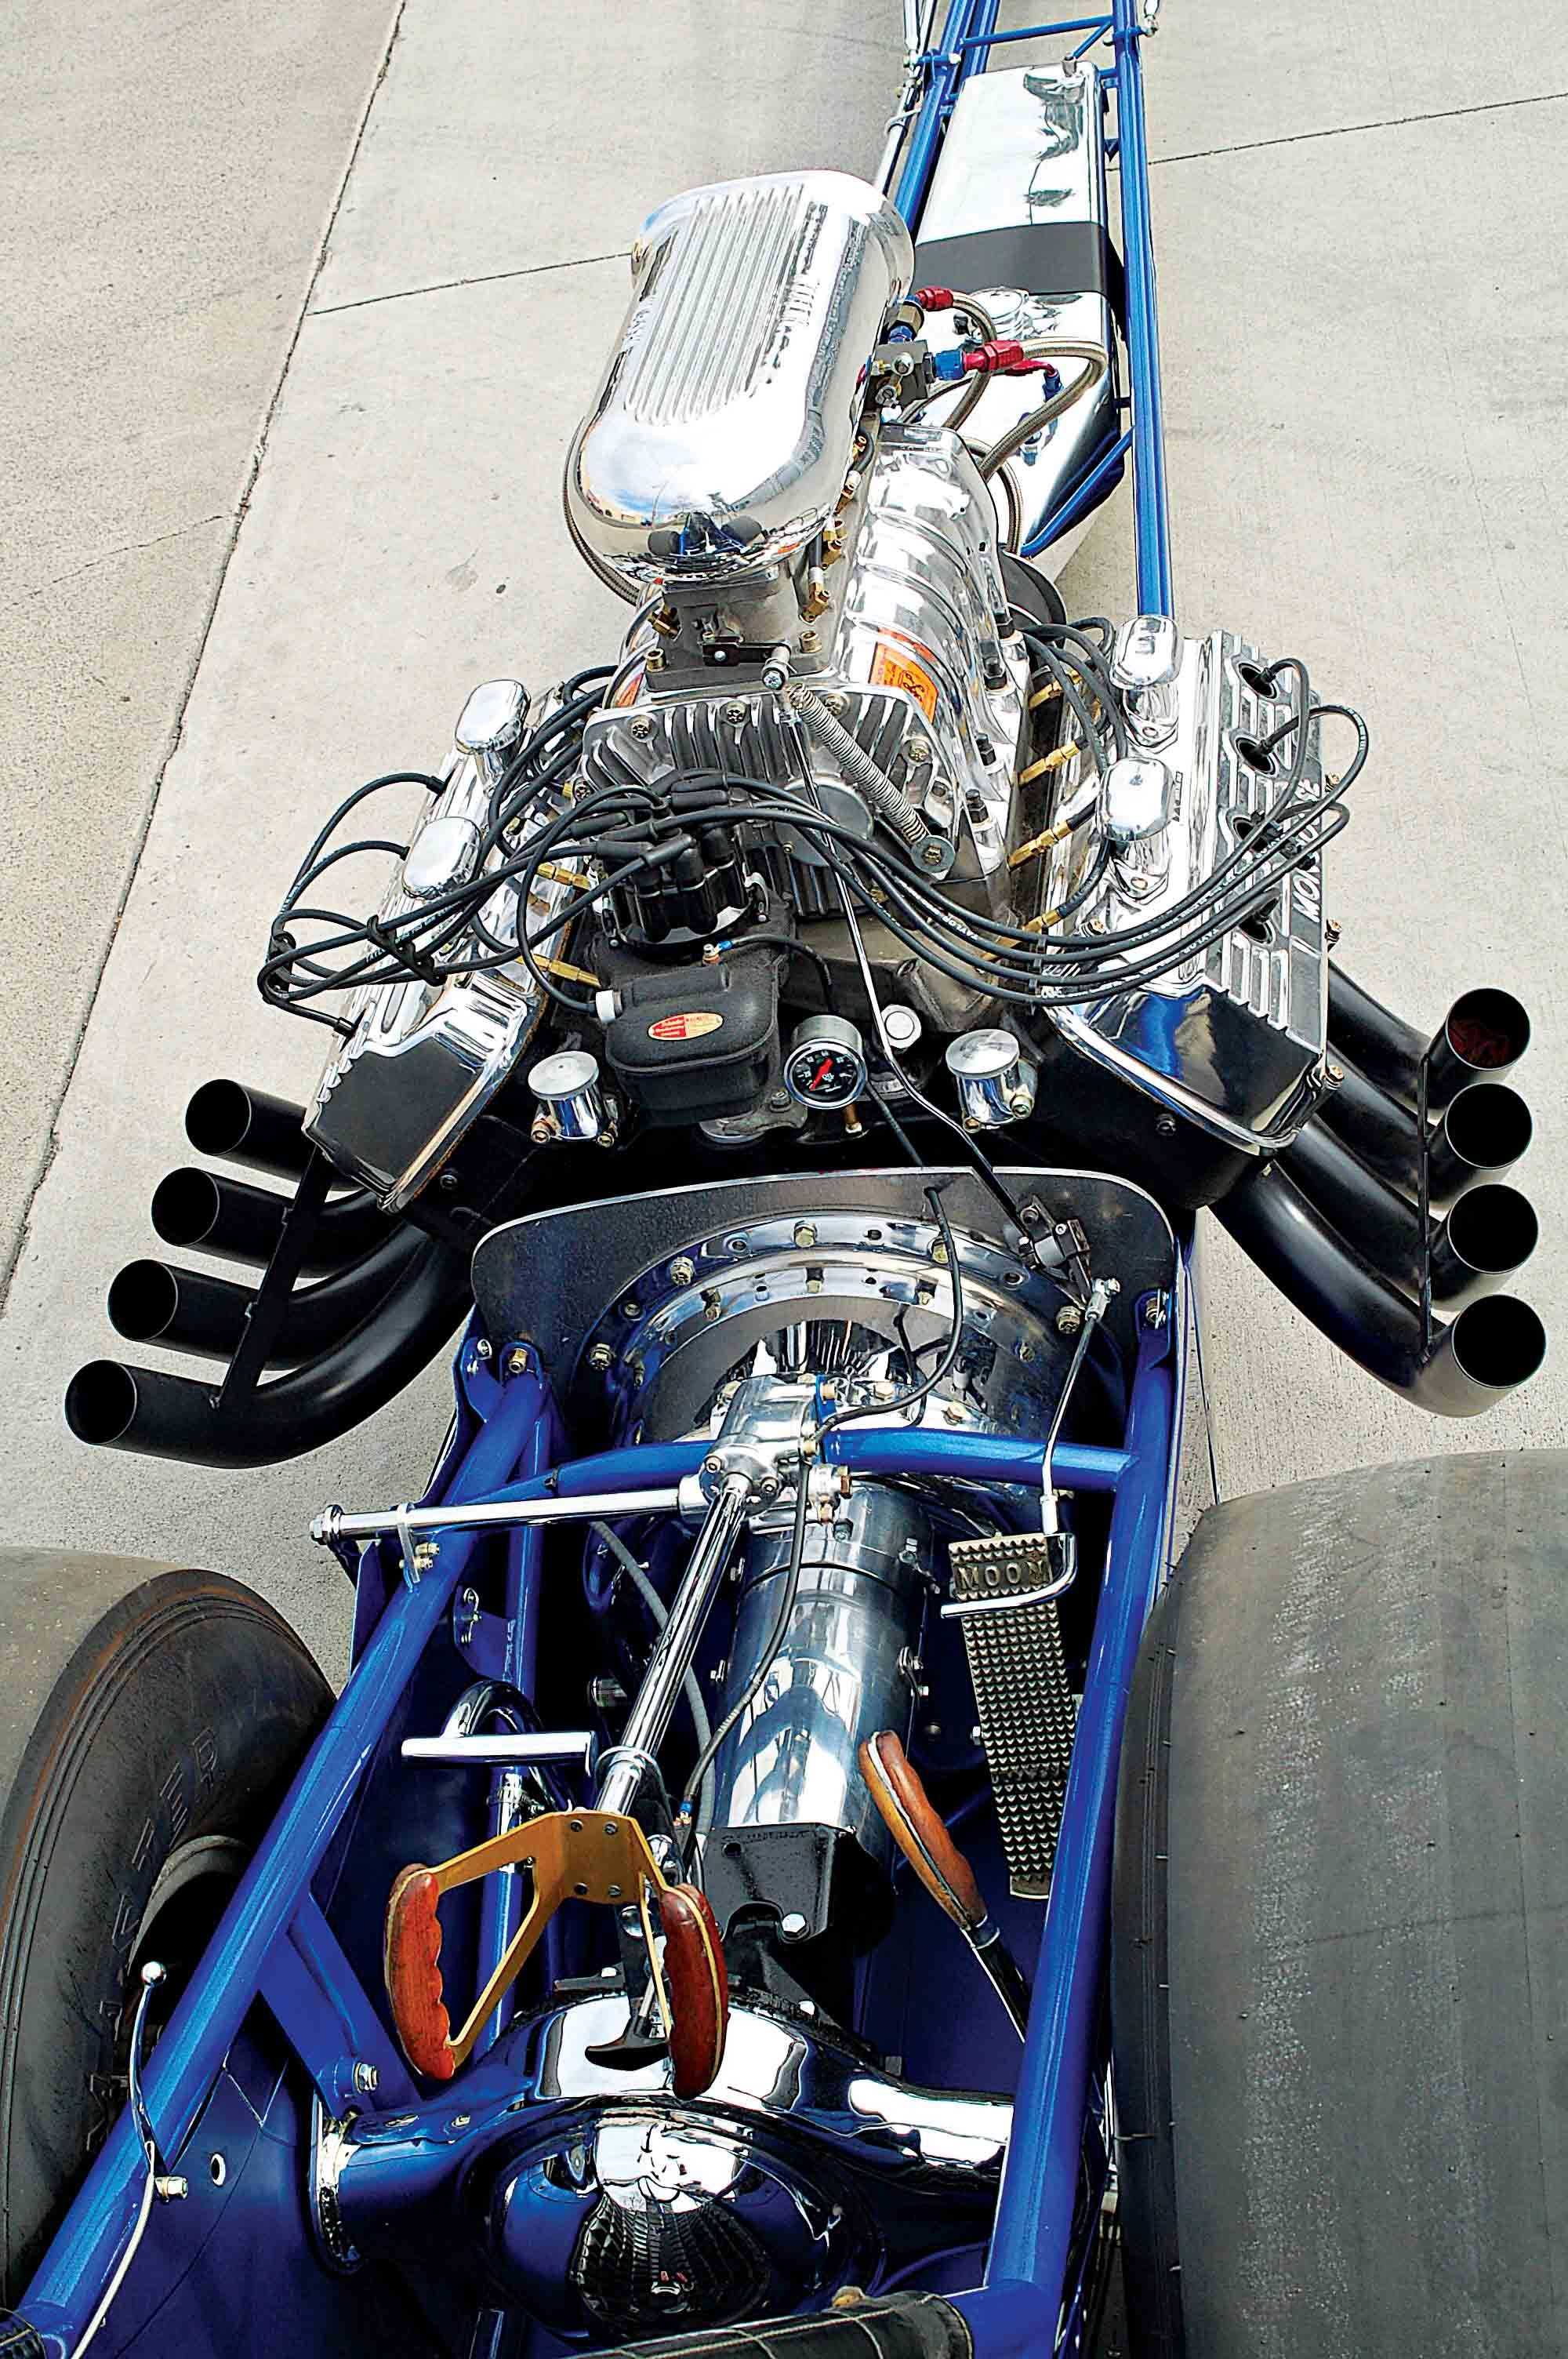 Pin By Greg N On Top Fuel Dragsters Pinterest Top Fuel Car